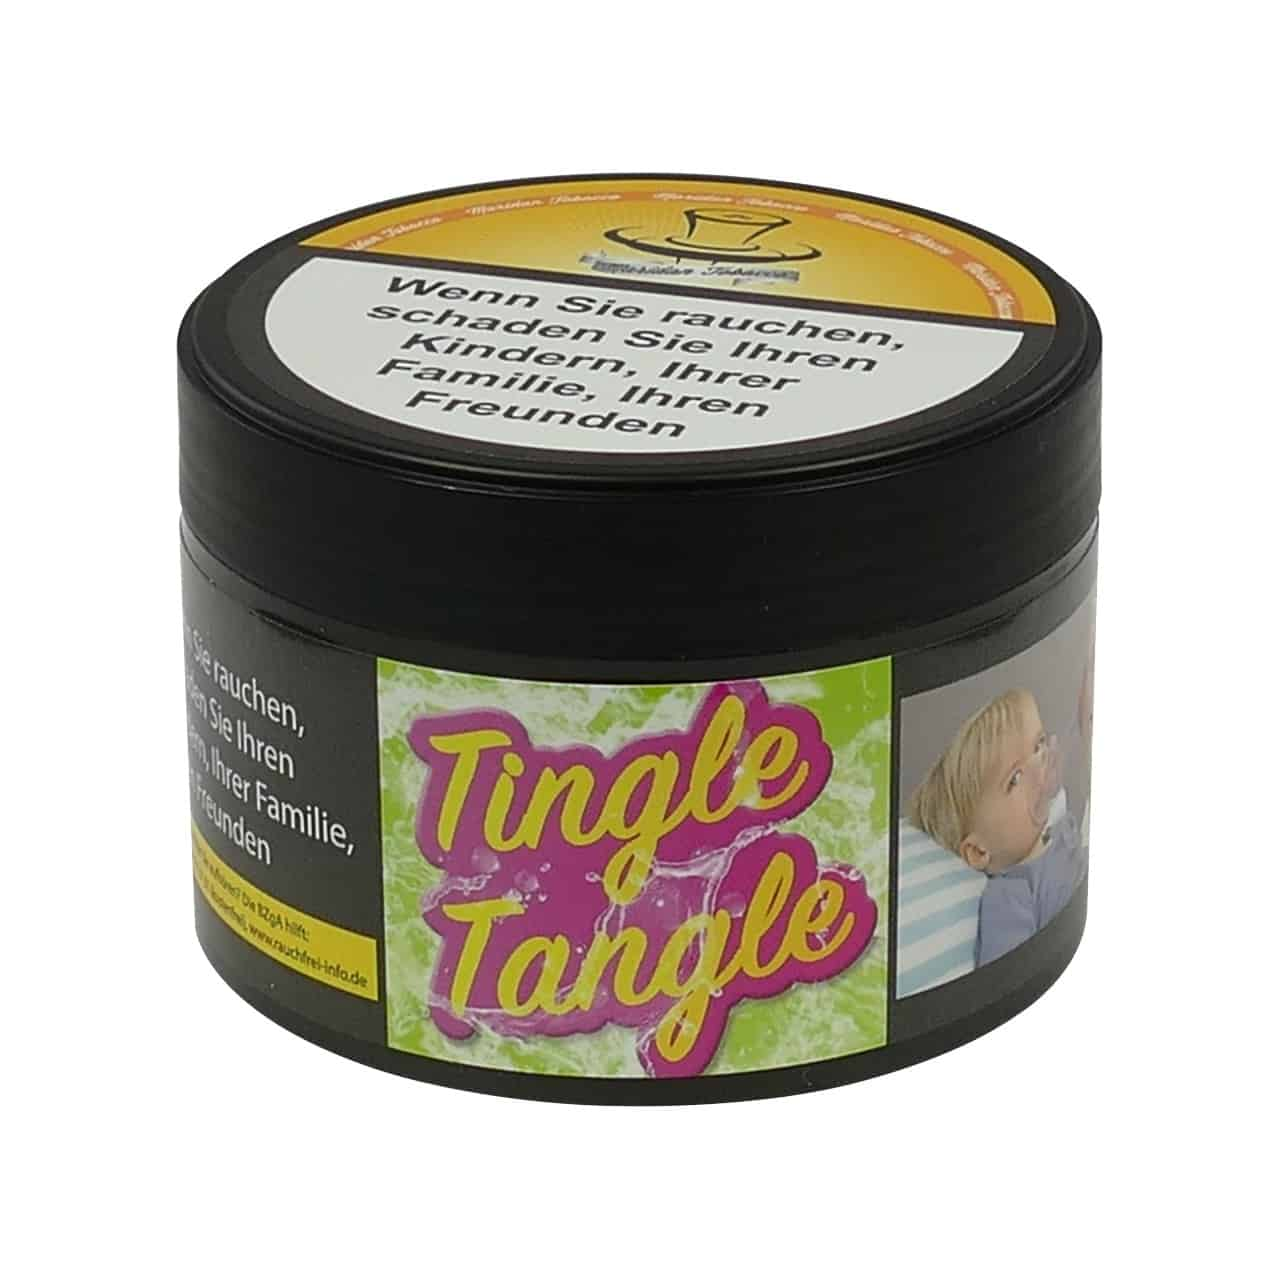 Tingle Tangle Shisha Tabak Grapefruit Limette